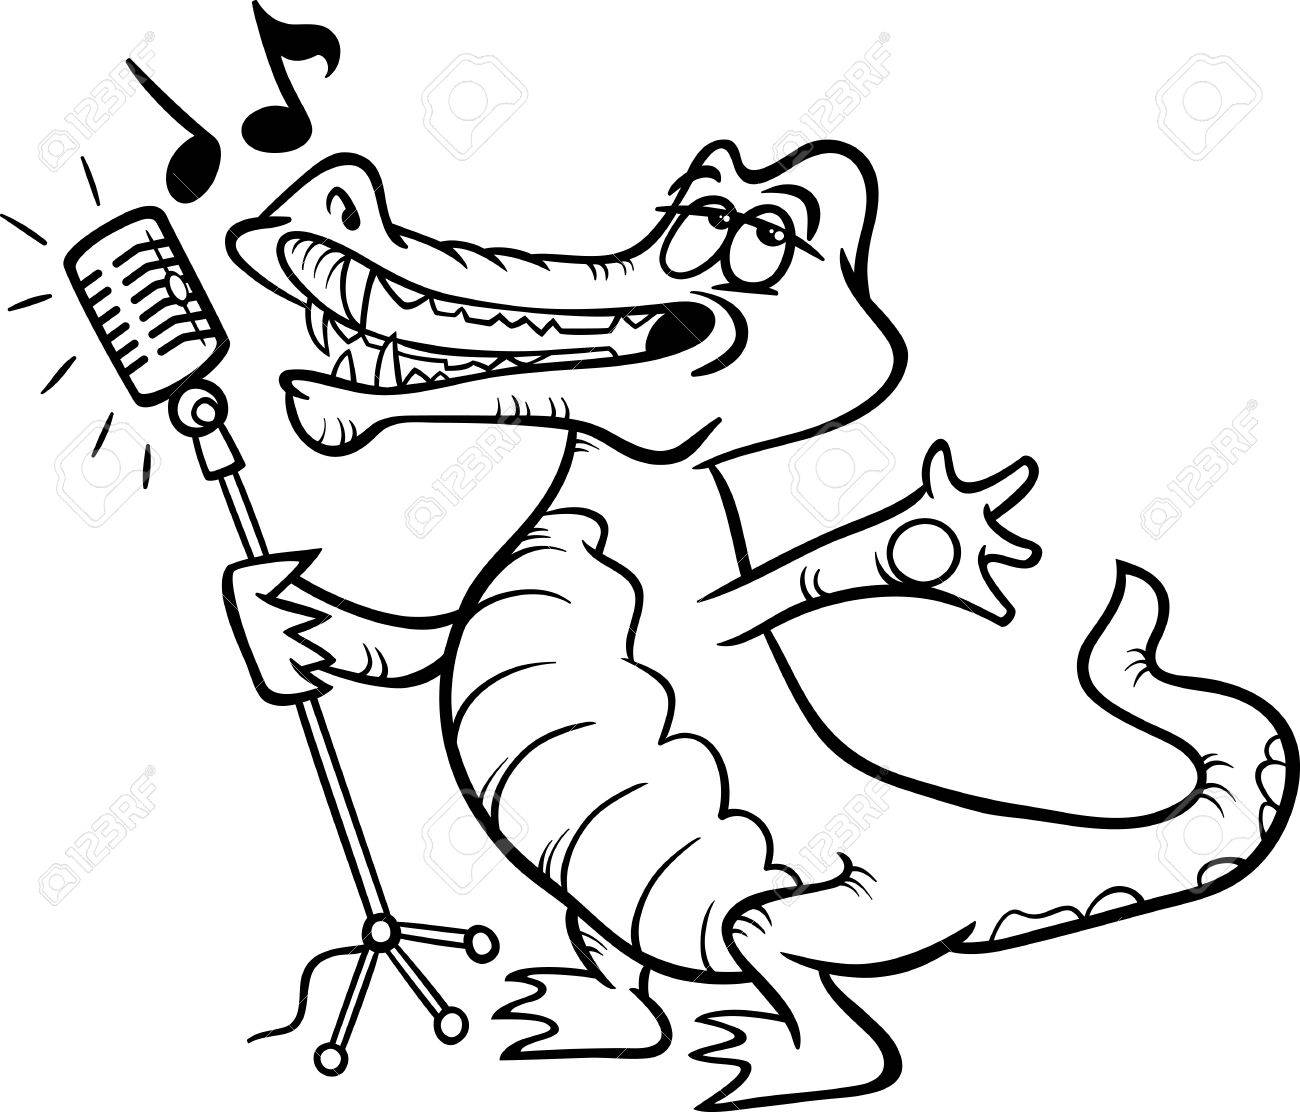 black and white cartoon illustration of funny singing crocodile royalty free cliparts vectors and stock illustration image 27355373 black and white cartoon illustration of funny singing crocodile